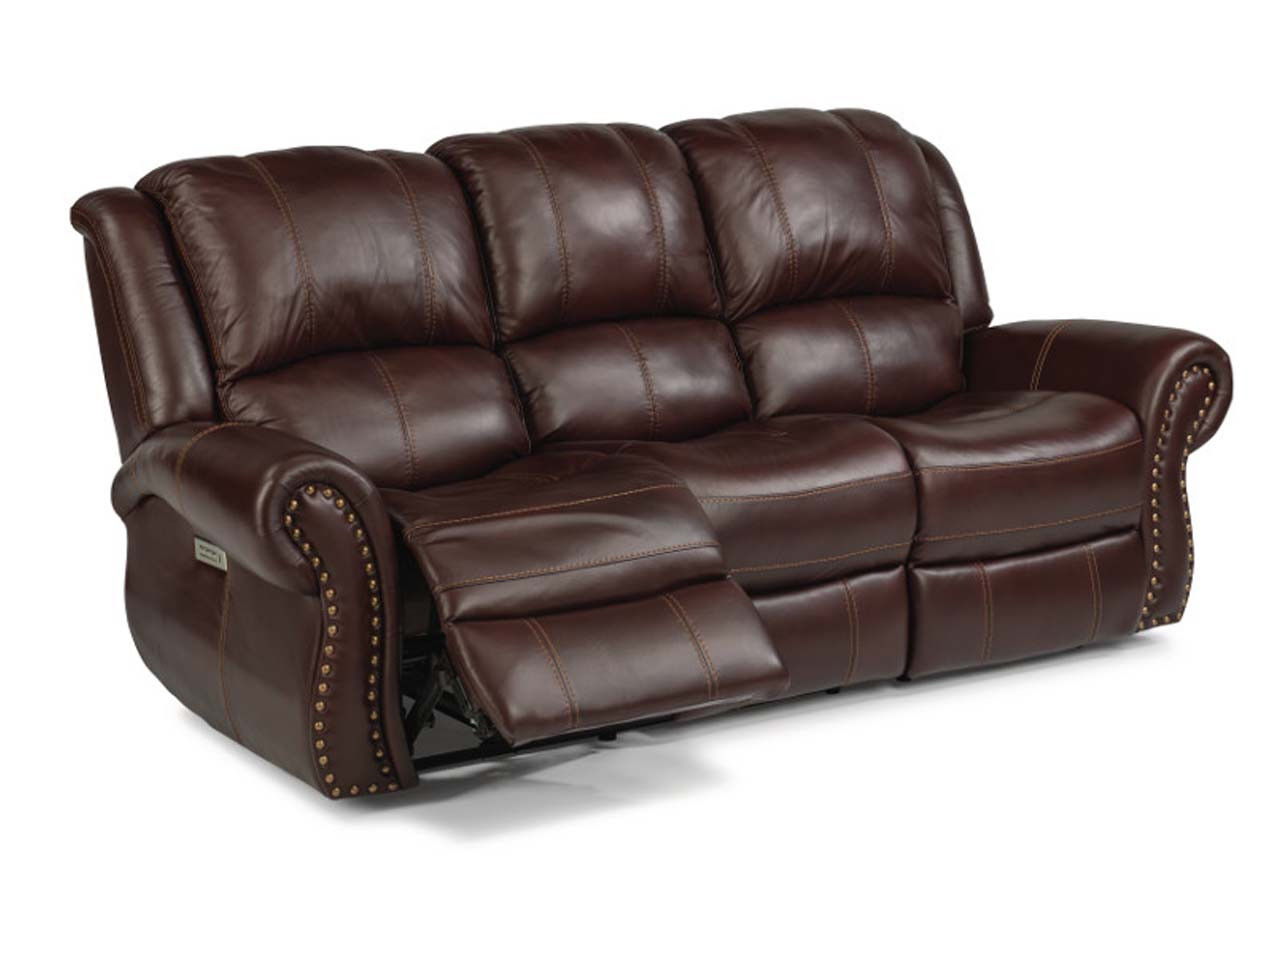 Patton Leather Reclining Sofa-